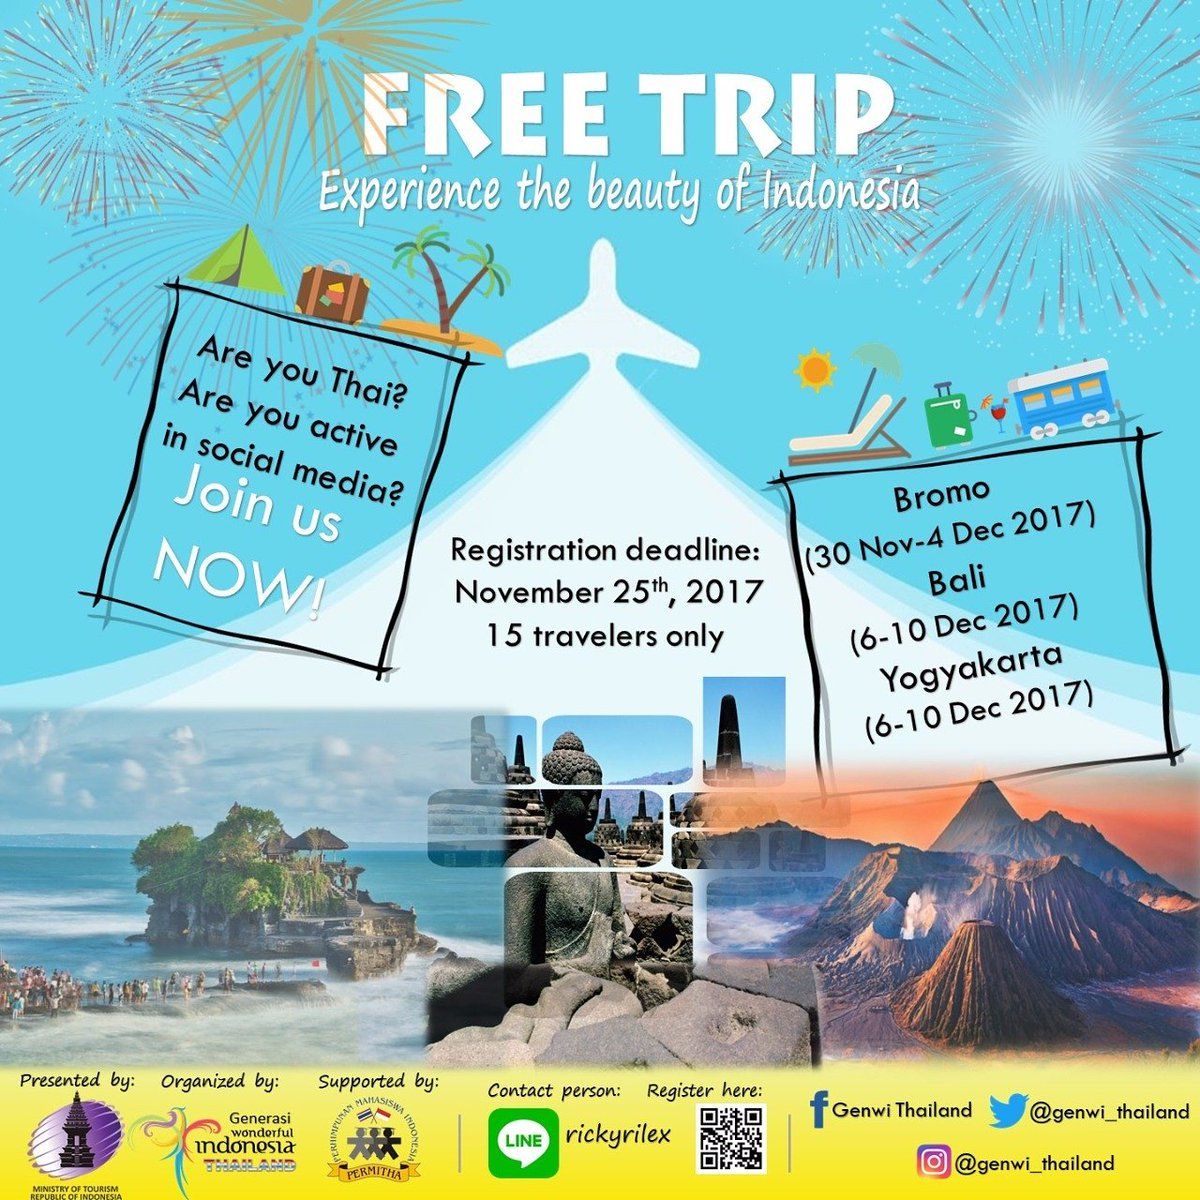 If you are thai.. please check this out.. Registration date: 22-25 November 2017 For more info, please contact: LINE ID: rickyrilex  #WonderfulIndonesia #มหัศจรรย์อินโดนีเซีย #อินโดนีเซีย<br>http://pic.twitter.com/pN6BYGy31h